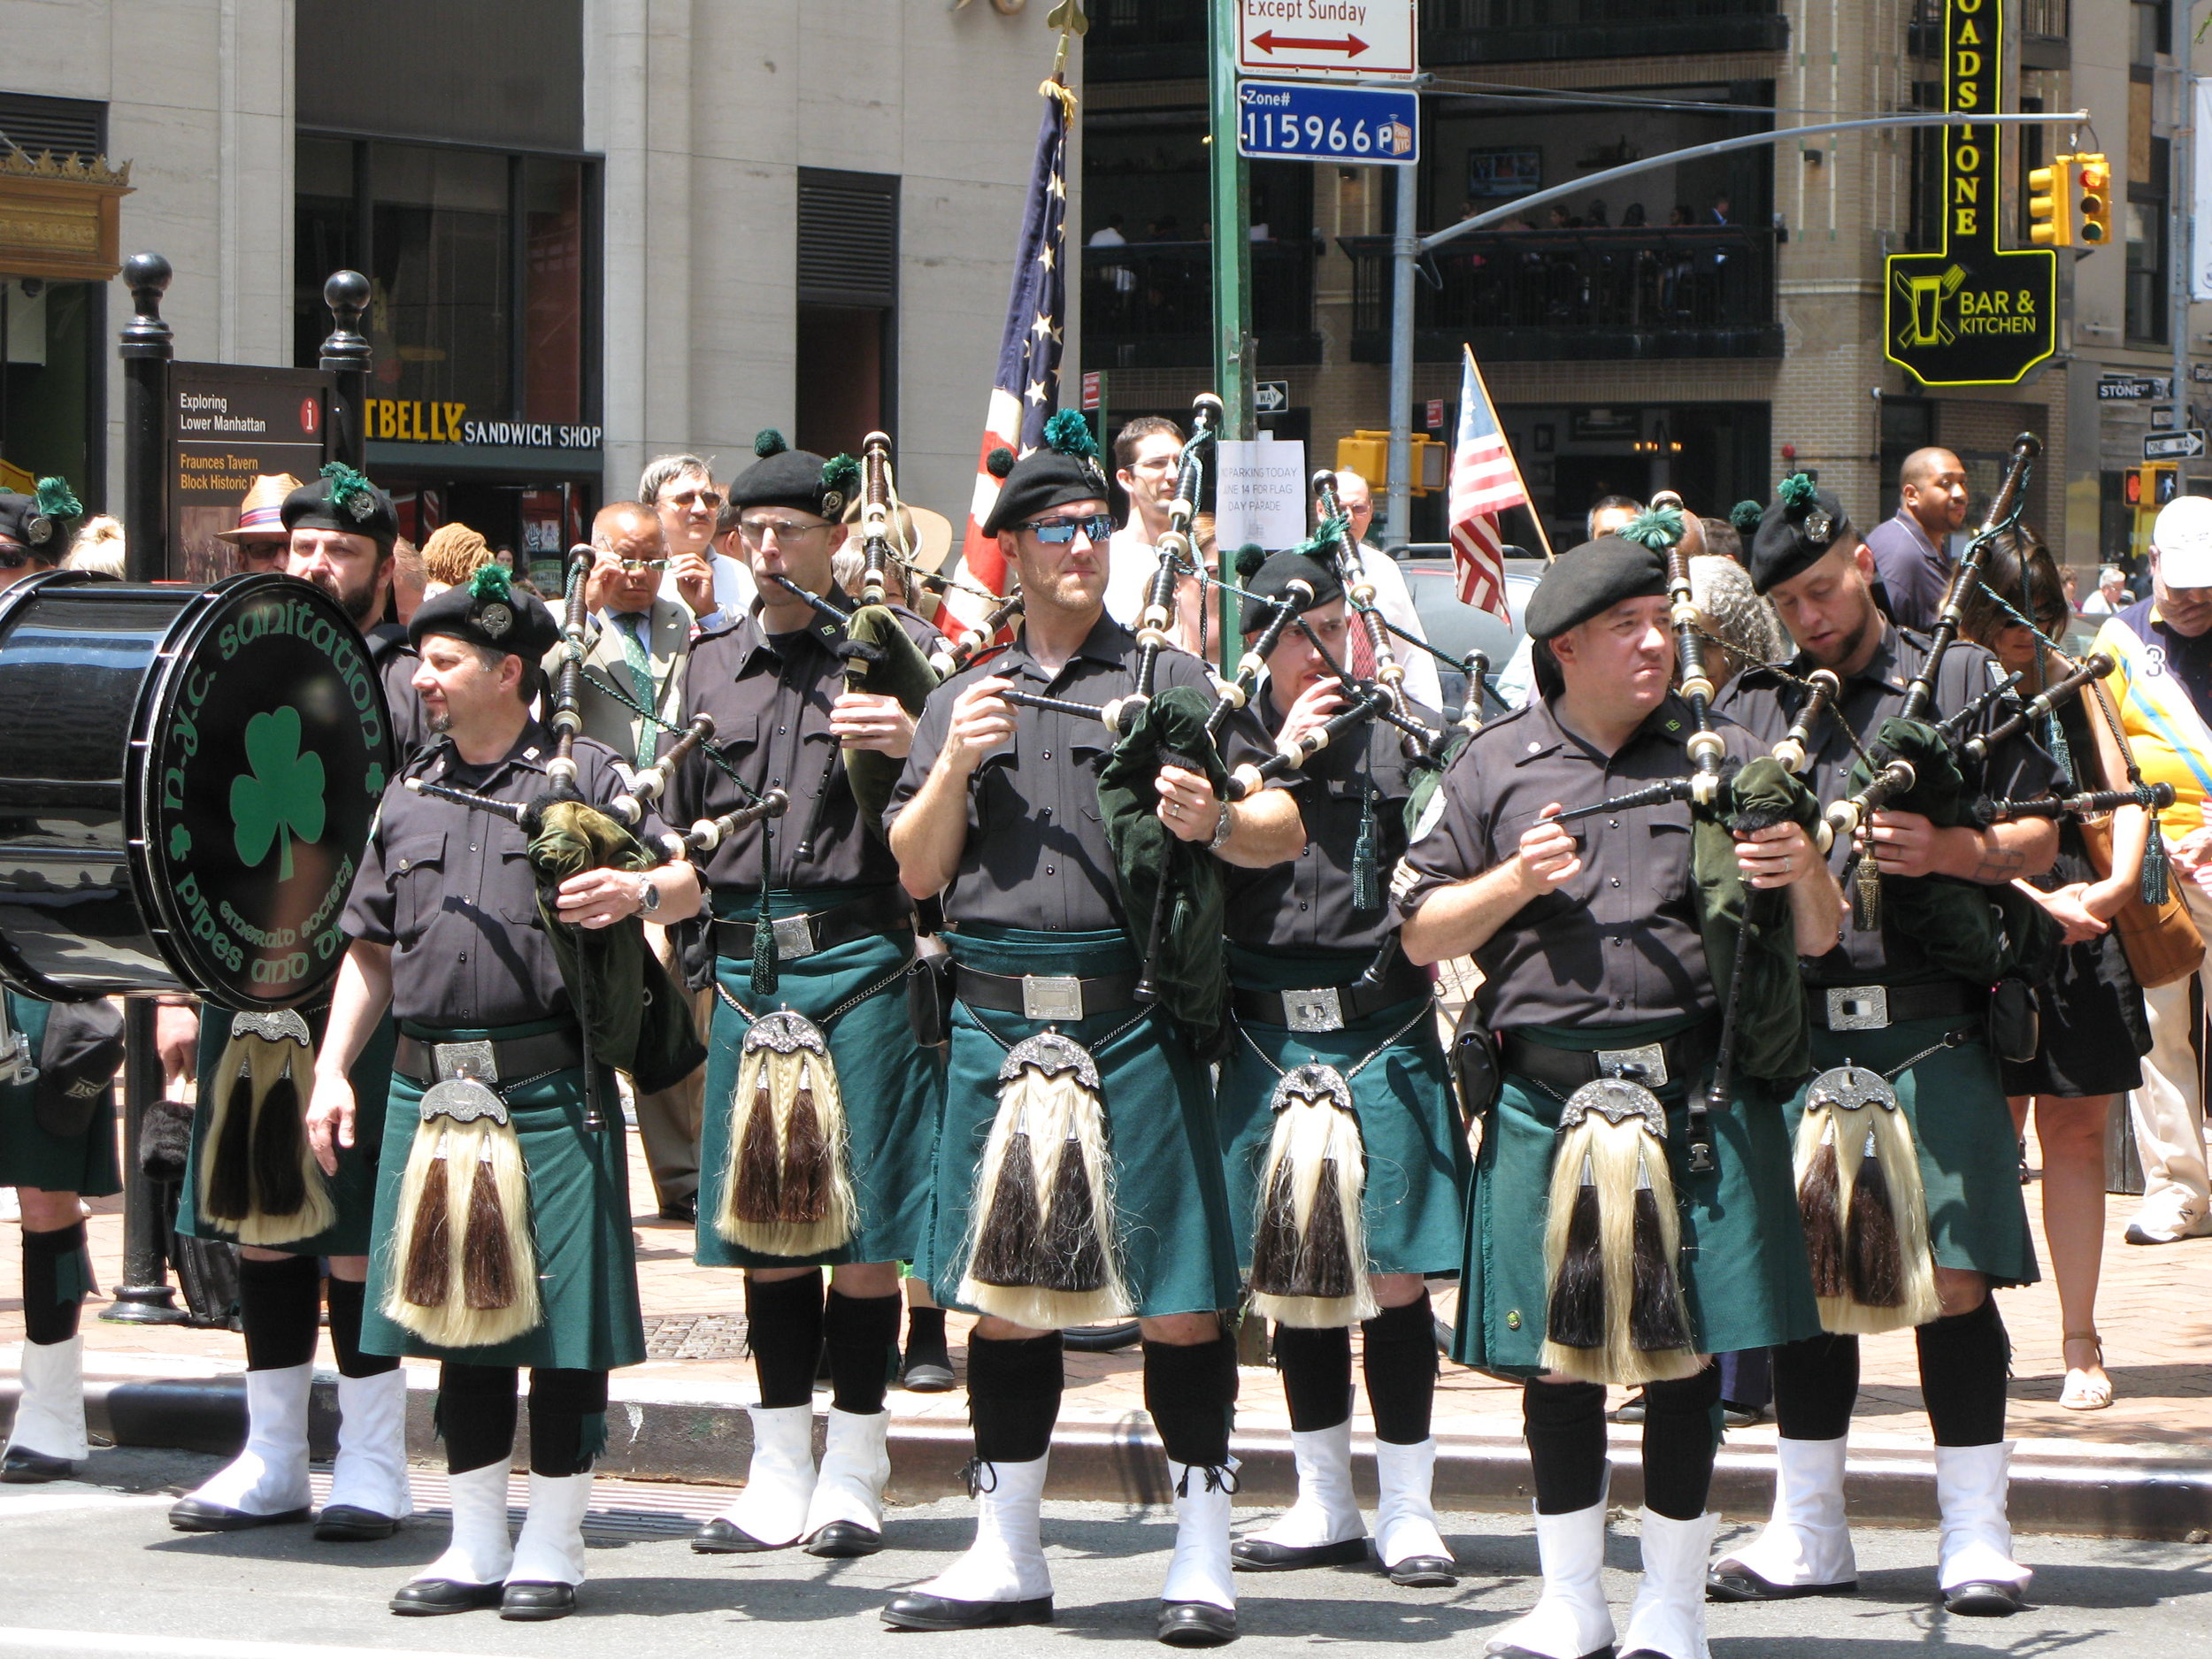 Flag Day 2017 NYC Dept of Sanitation Pipes & Drums of the Emerald Society.JPG